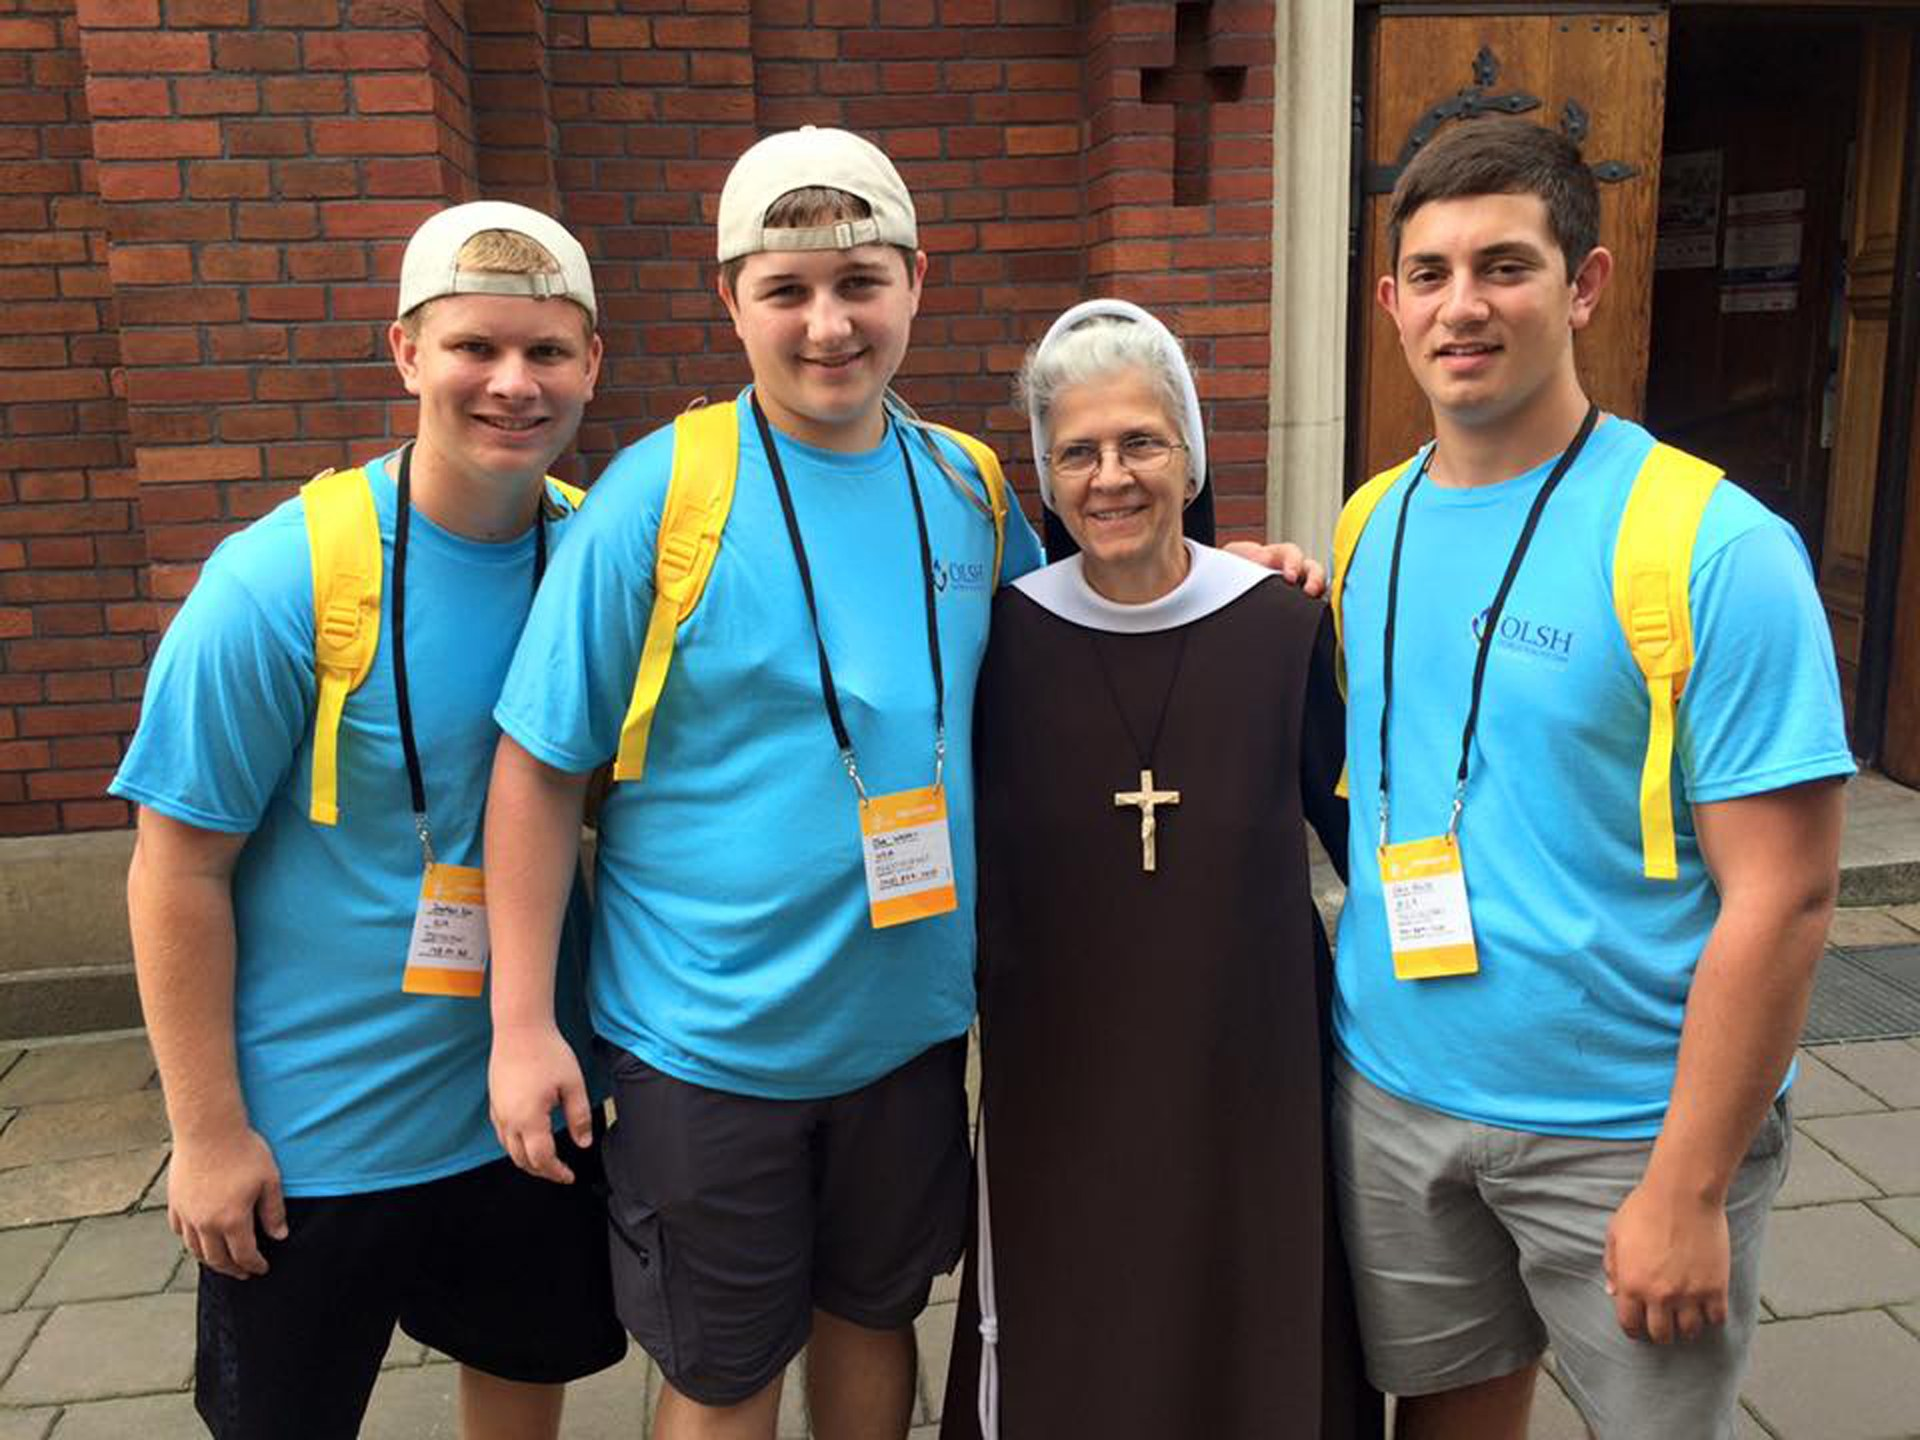 OLSH students with a Felician Sister they met in Poland